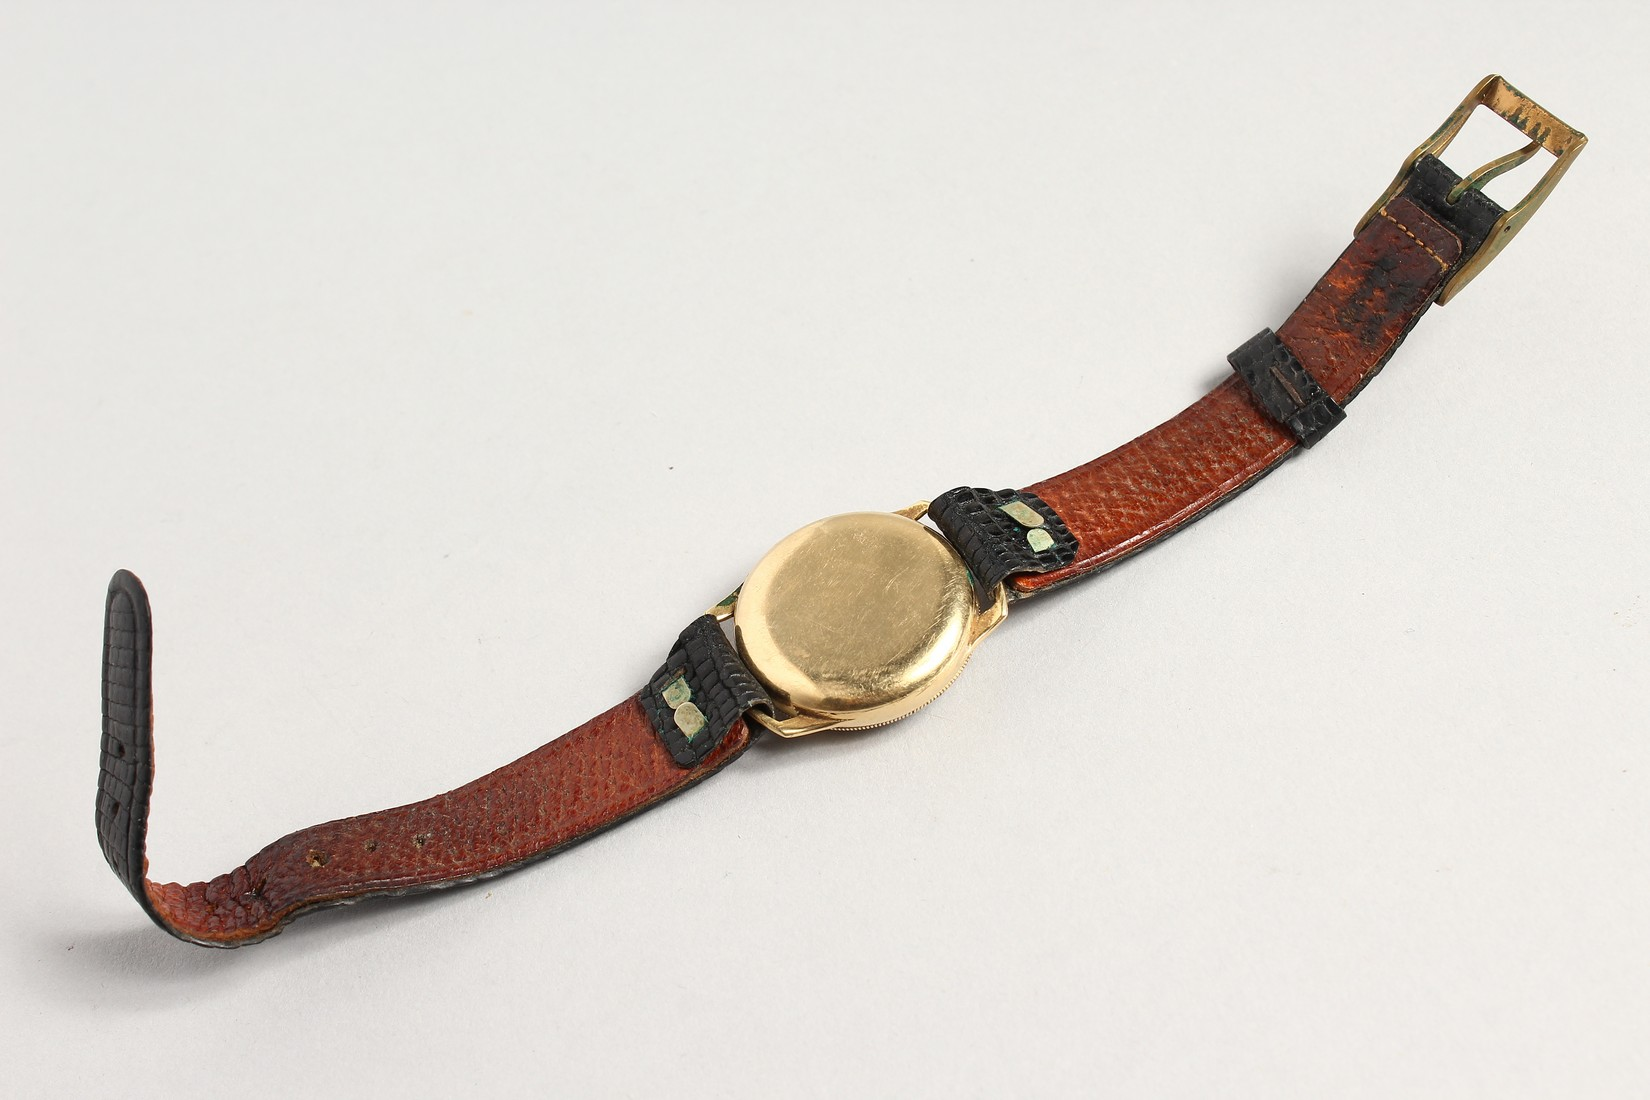 A HARWOOD GOLD WRISTWATCH with leather strap. - Image 3 of 3